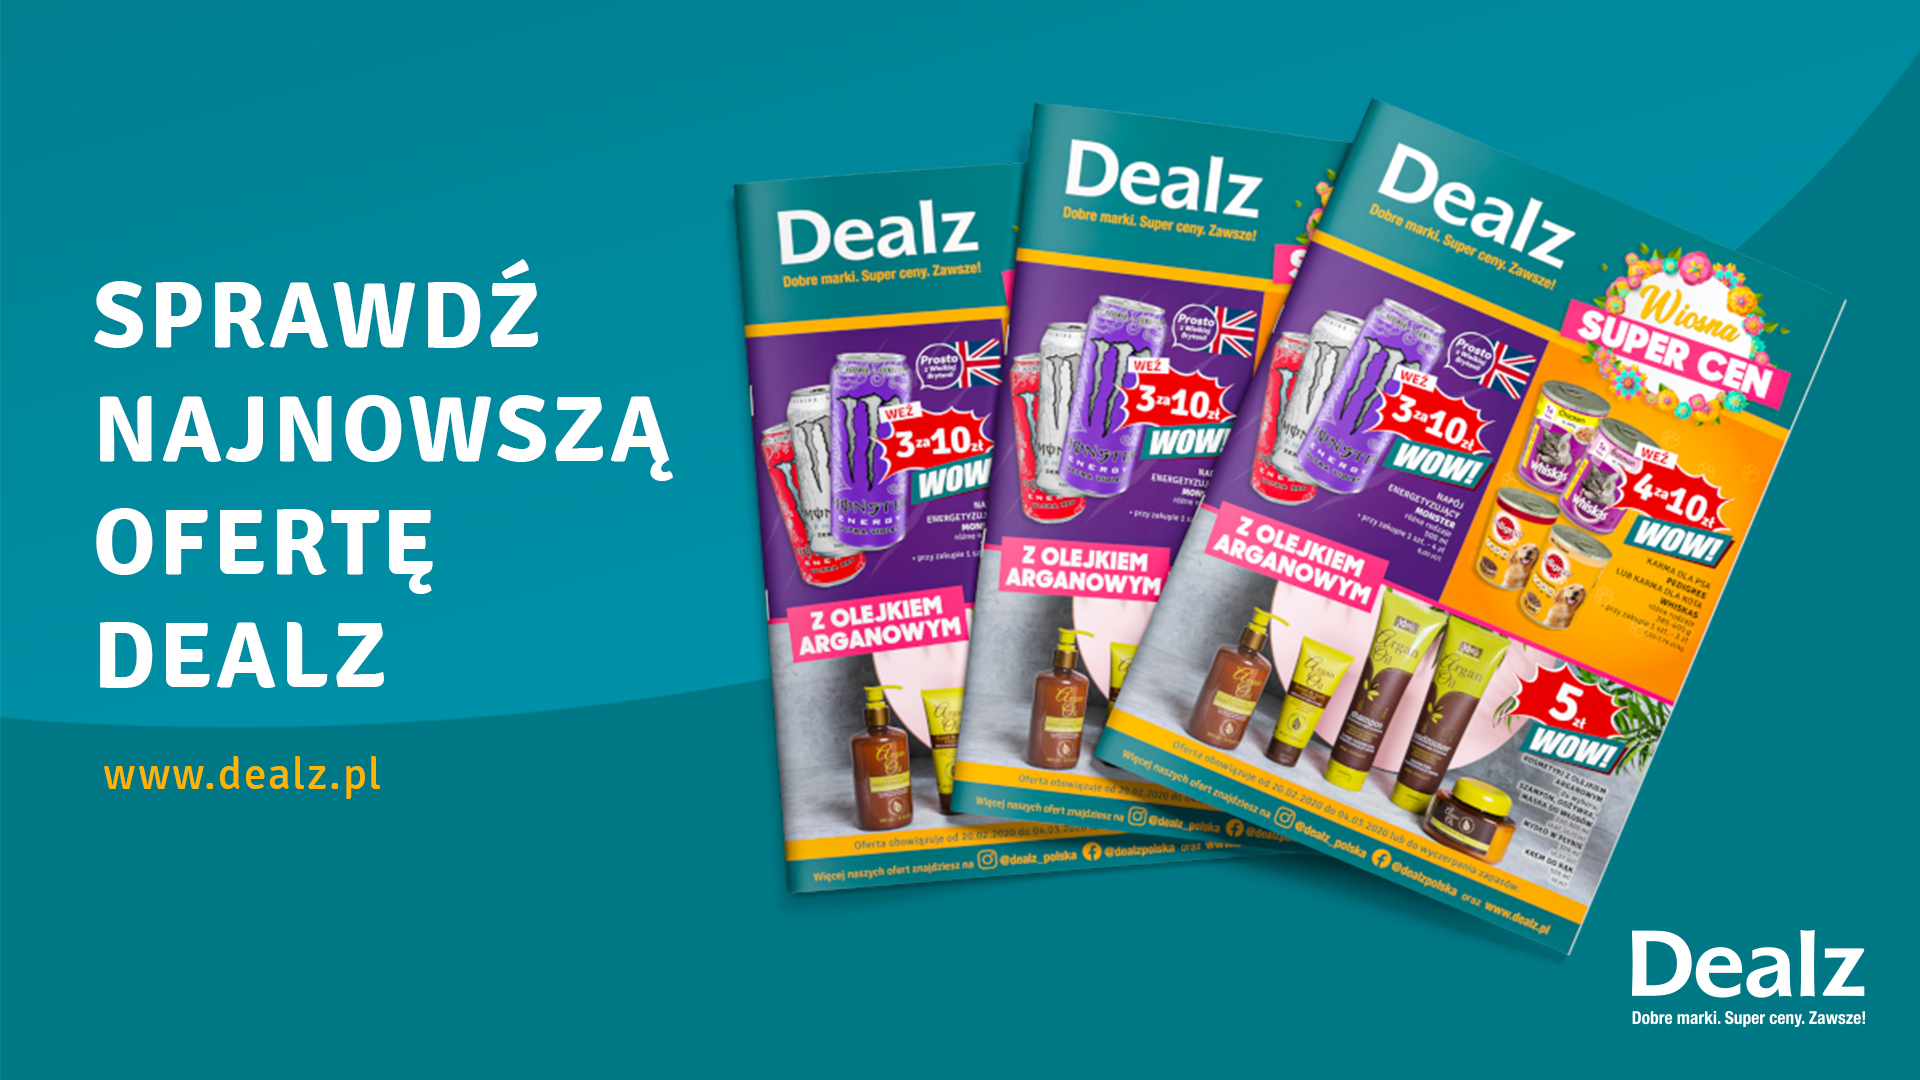 Wiosna super cen w Dealz!